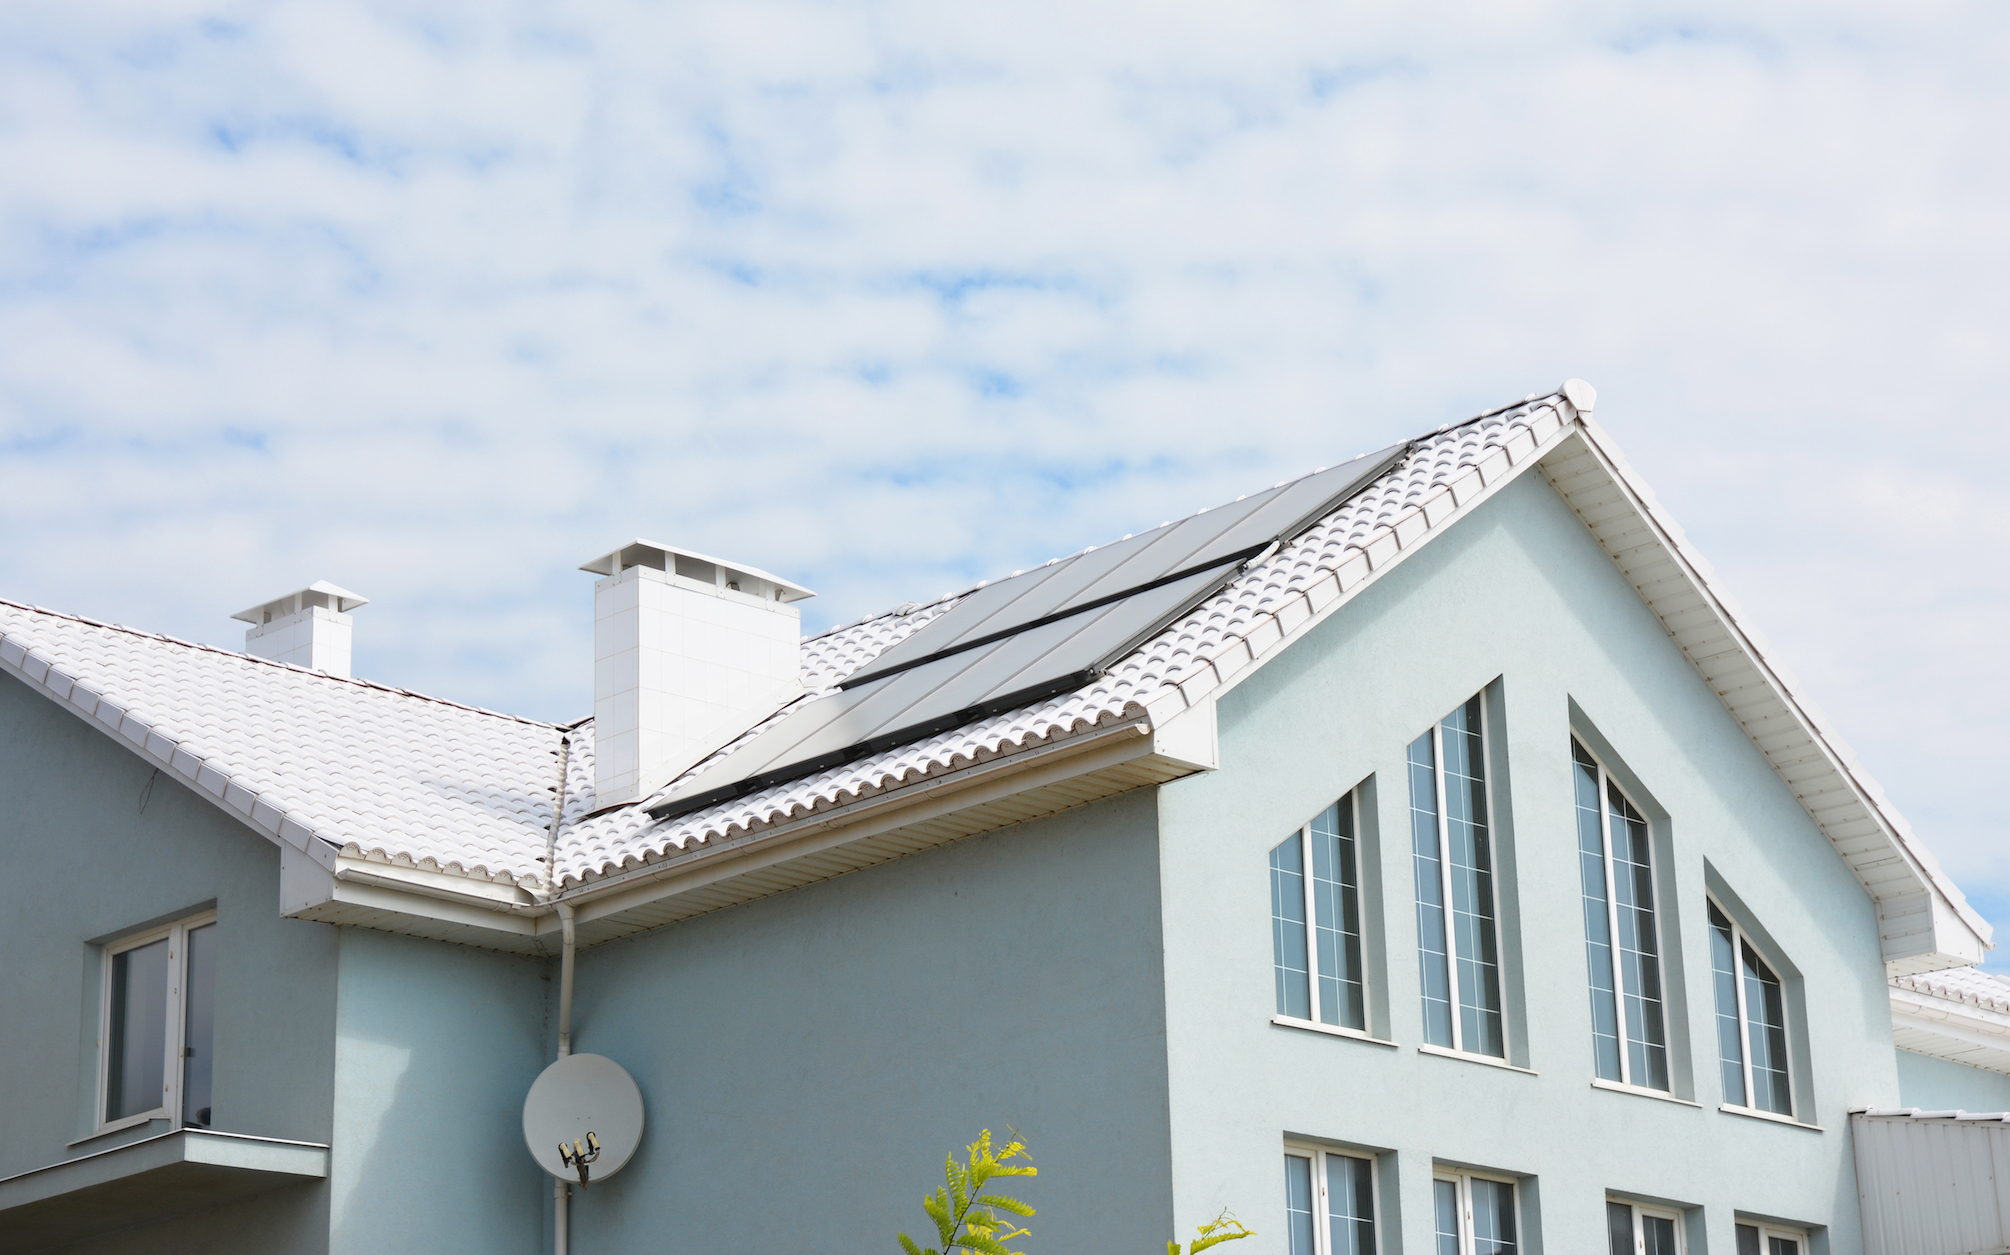 Cool roofs help reduce energy costs, but a new study has now found that they can also help save water as well.